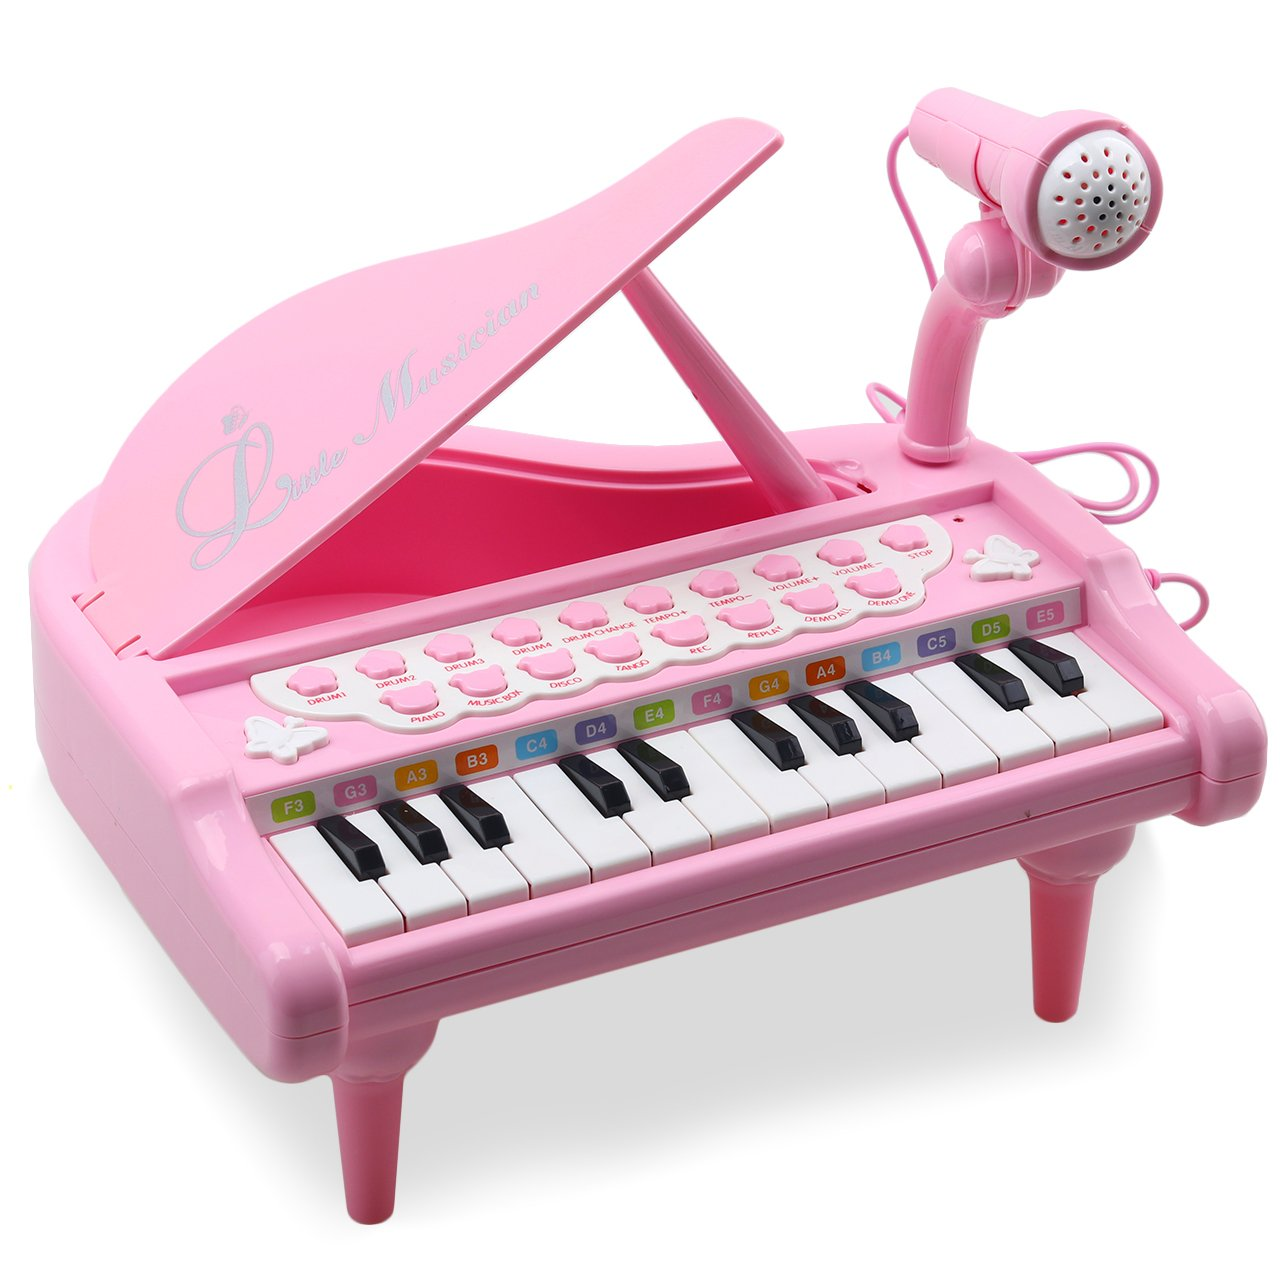 Amy & Benton Toddler Piano Toy Keyboard for Kids 24 Keys Pink Birthday Gift Toys for Baby 1 2 3 4 Years Old Girls